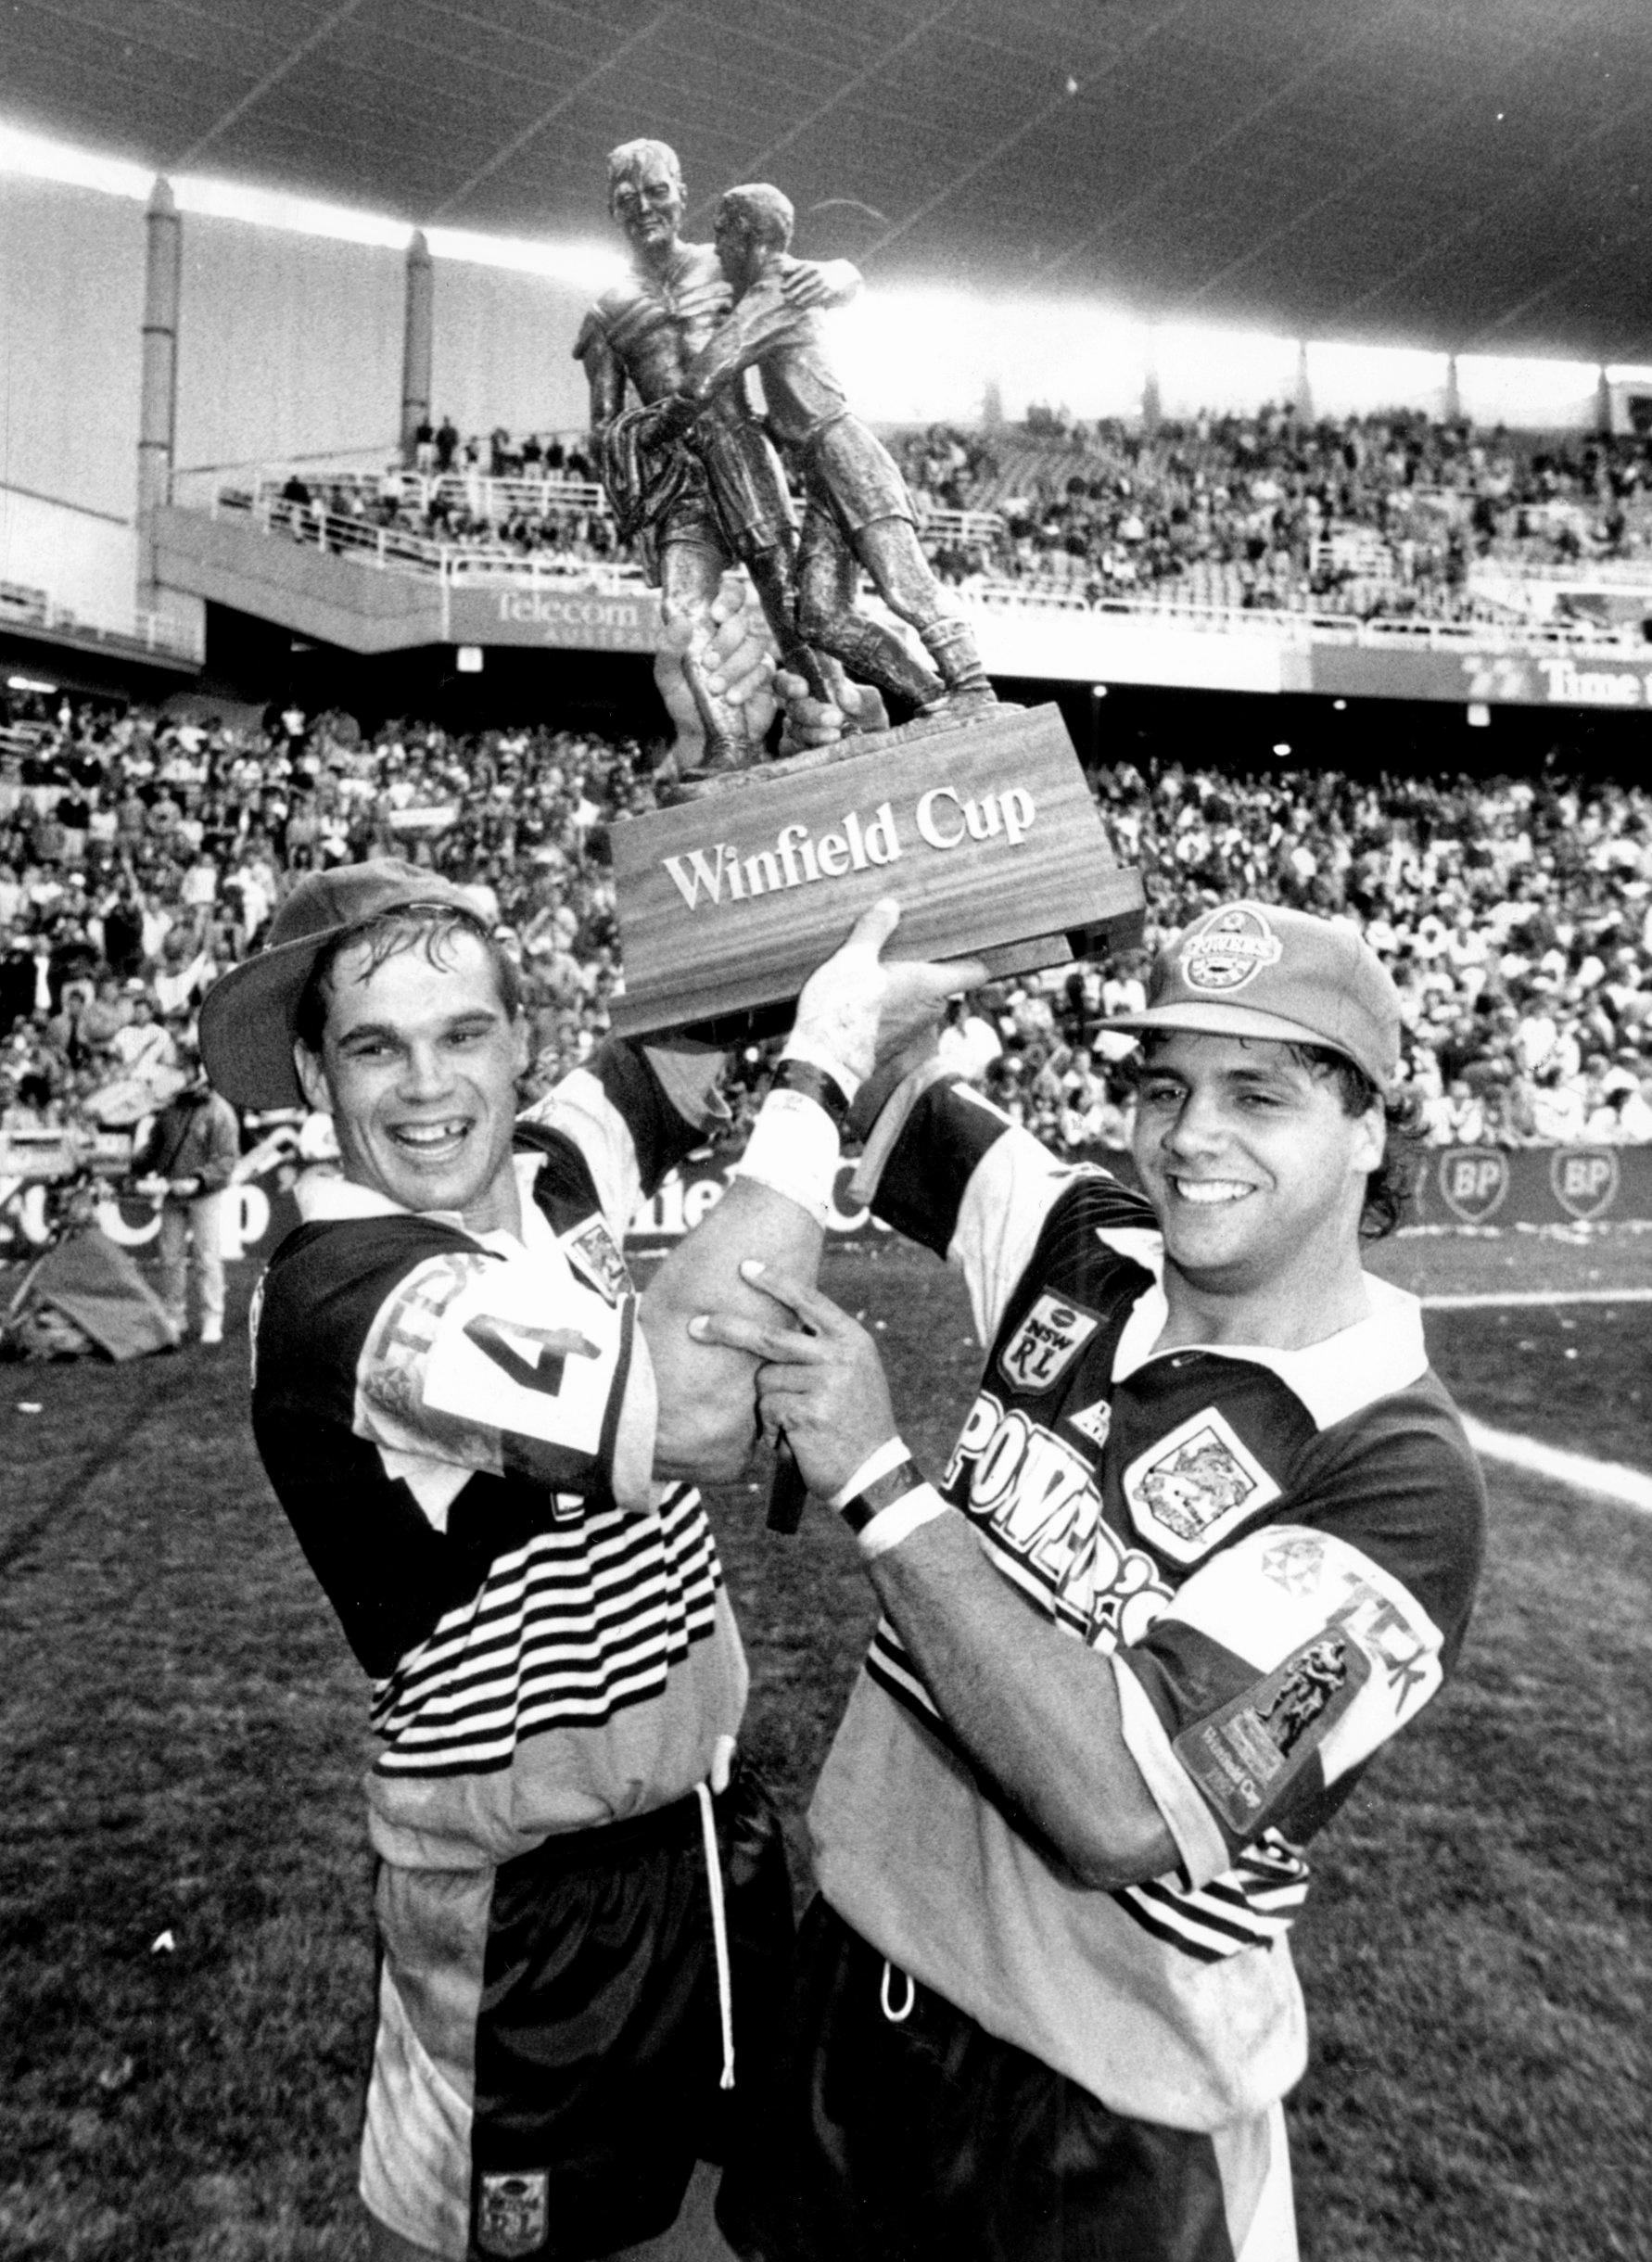 Chris Johns and Steve Renouf hold up the Winfield Cup in 1992. Photo: Gregg Porteous